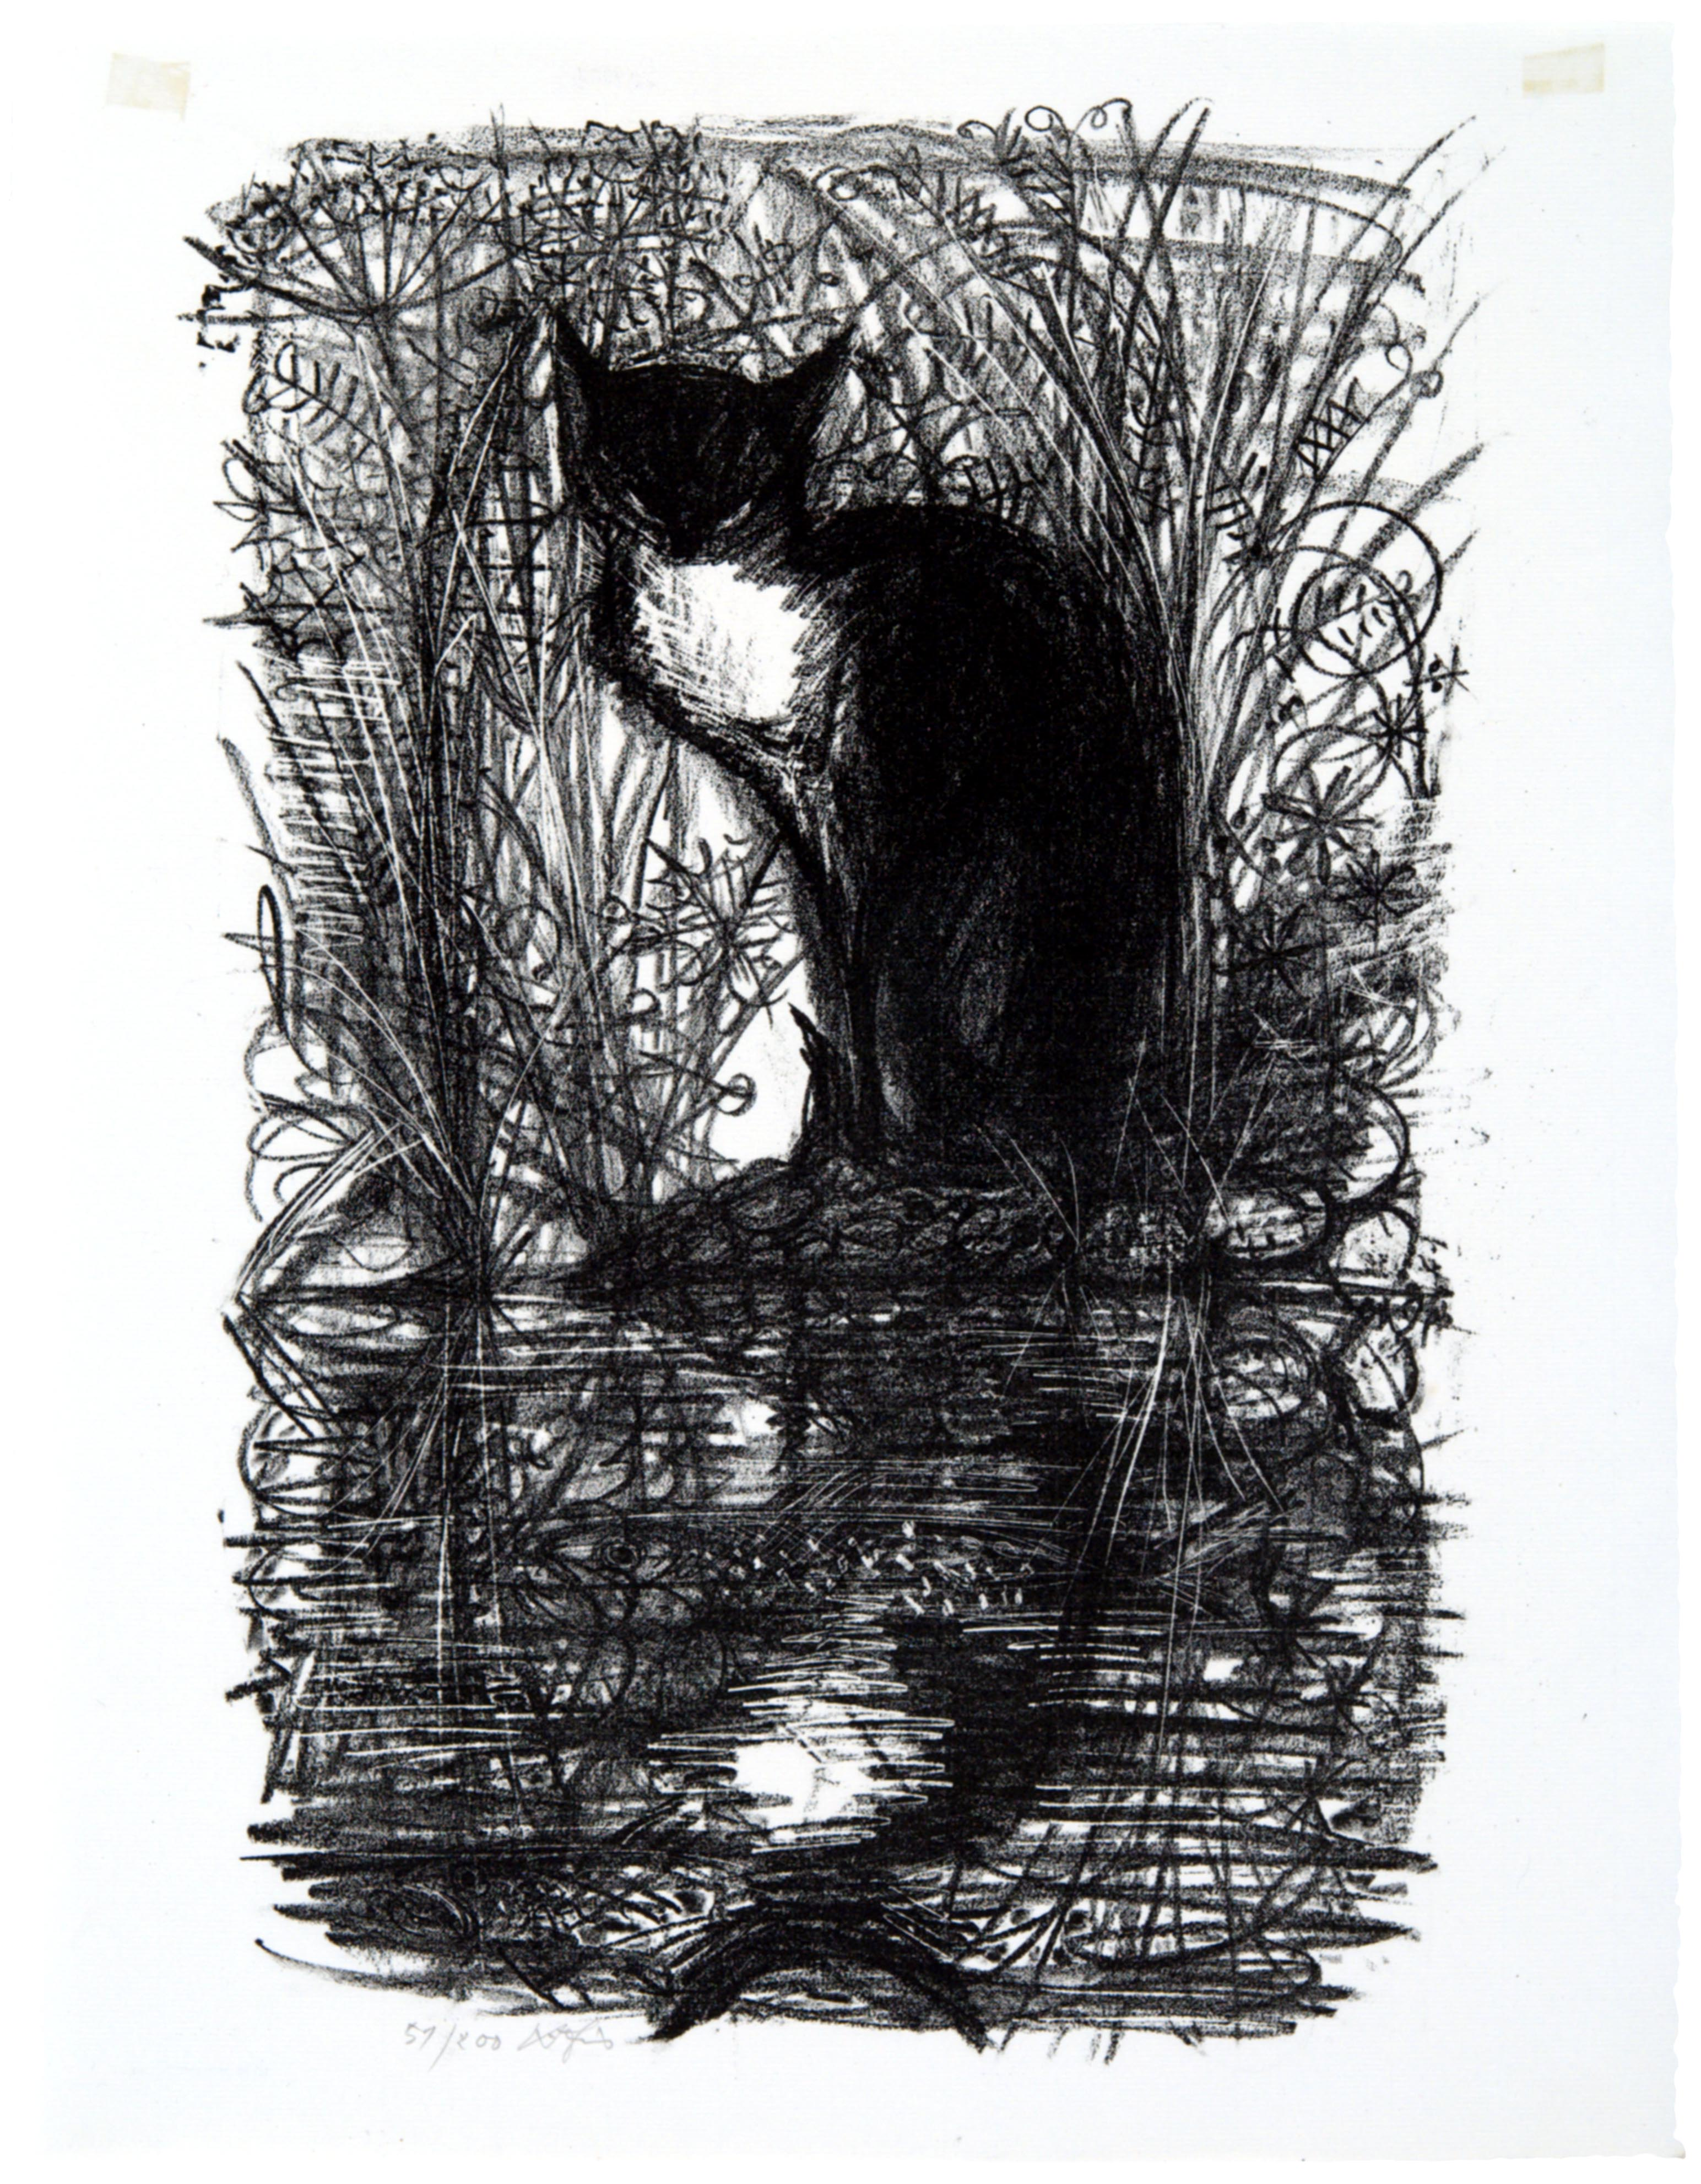 Hans Fischer, The Fishing Cat, n.d.